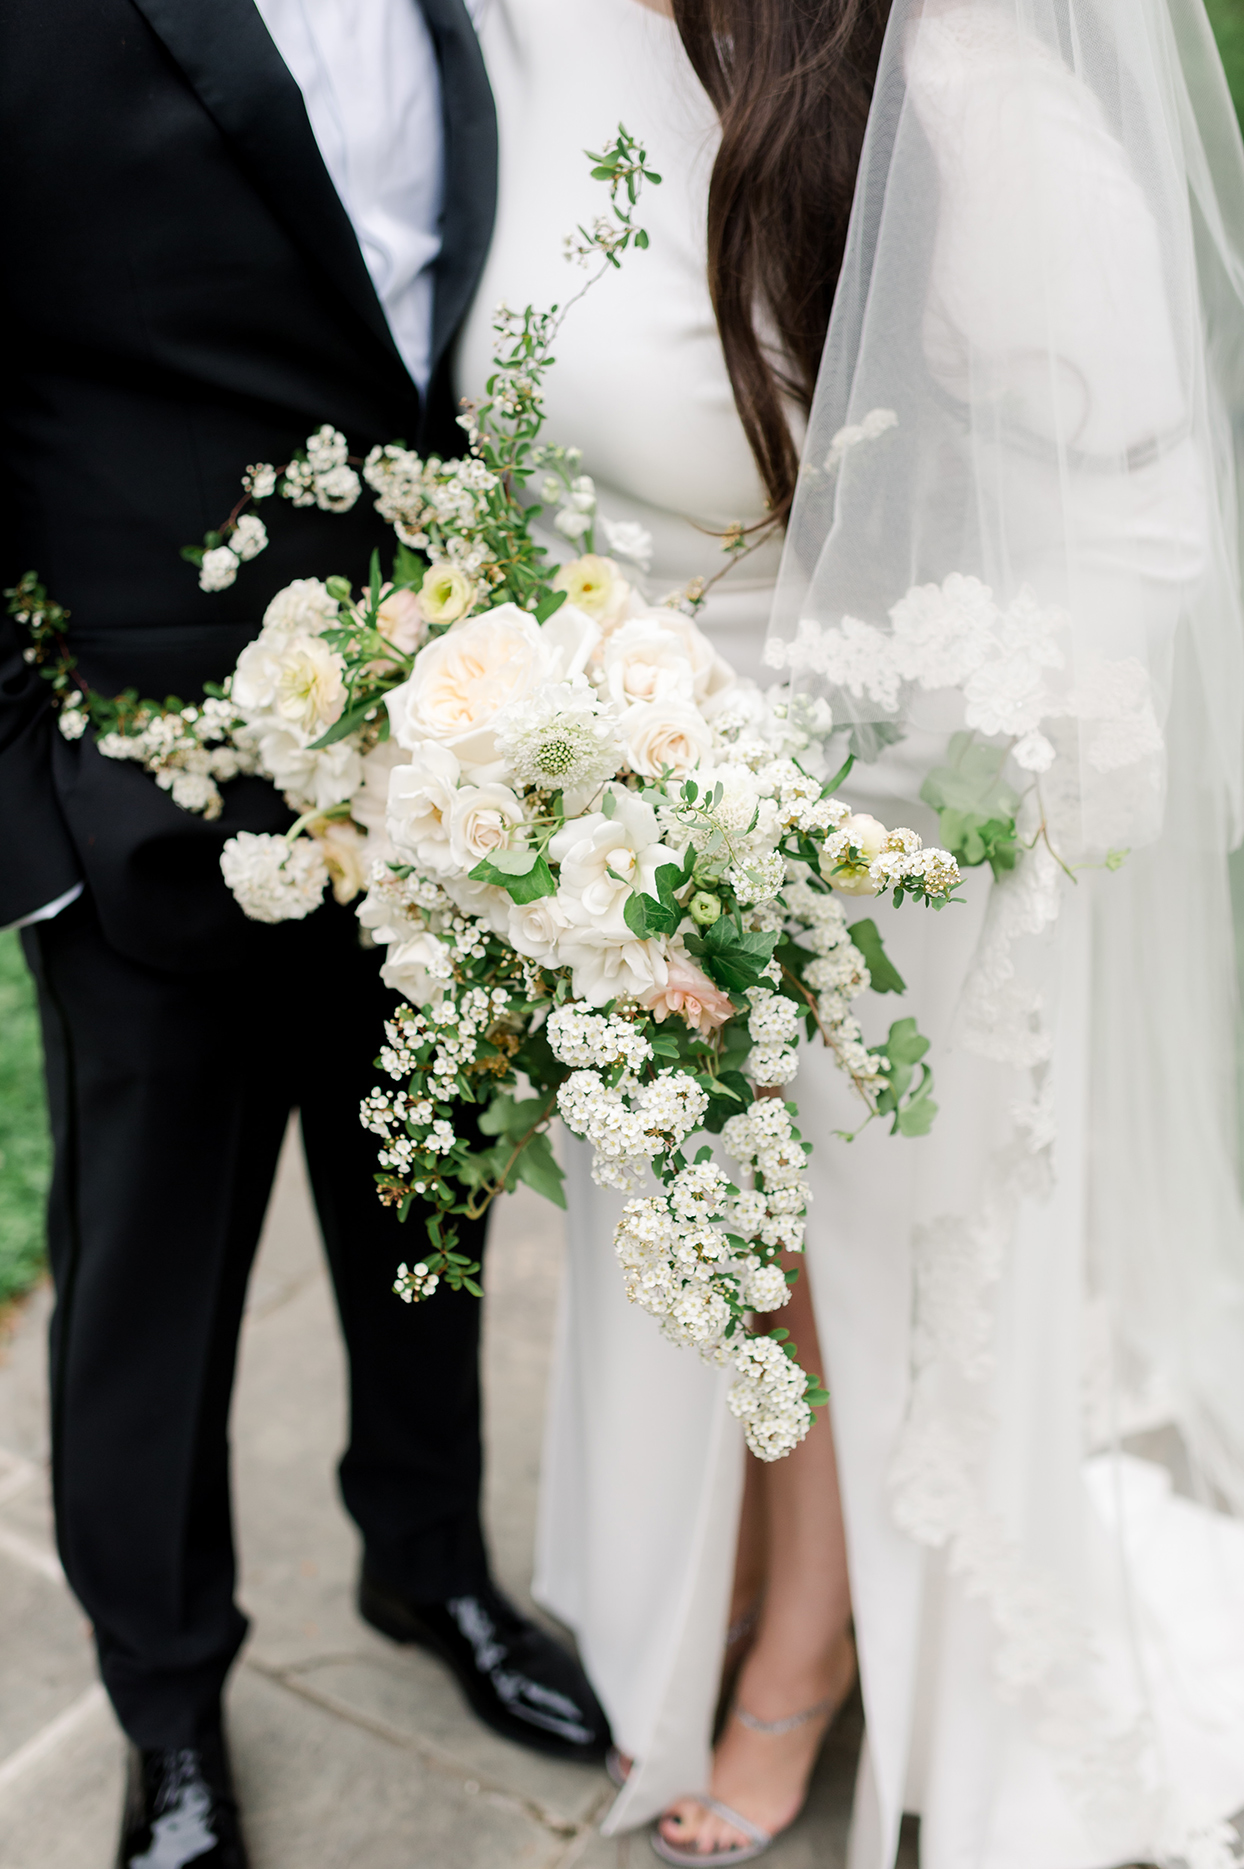 Bride's bouquet of spirea, garden roses, spray roses, scabiosa, and butterfly ranunculus